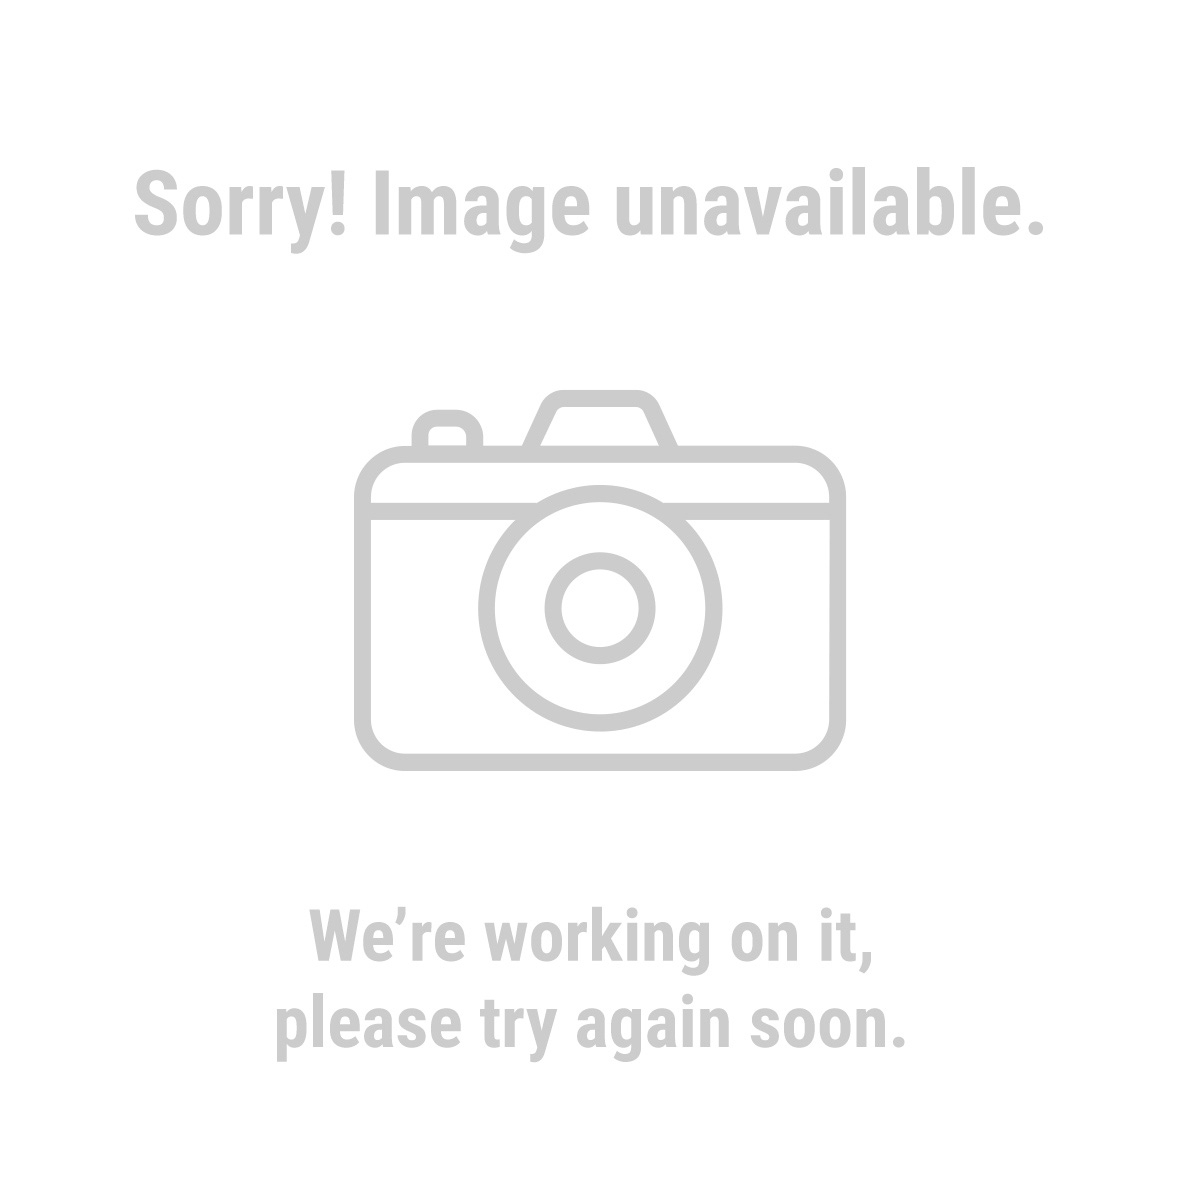 HFT 62521 2 Piece 3-1/2 in. 9 LED Mini Flashlight